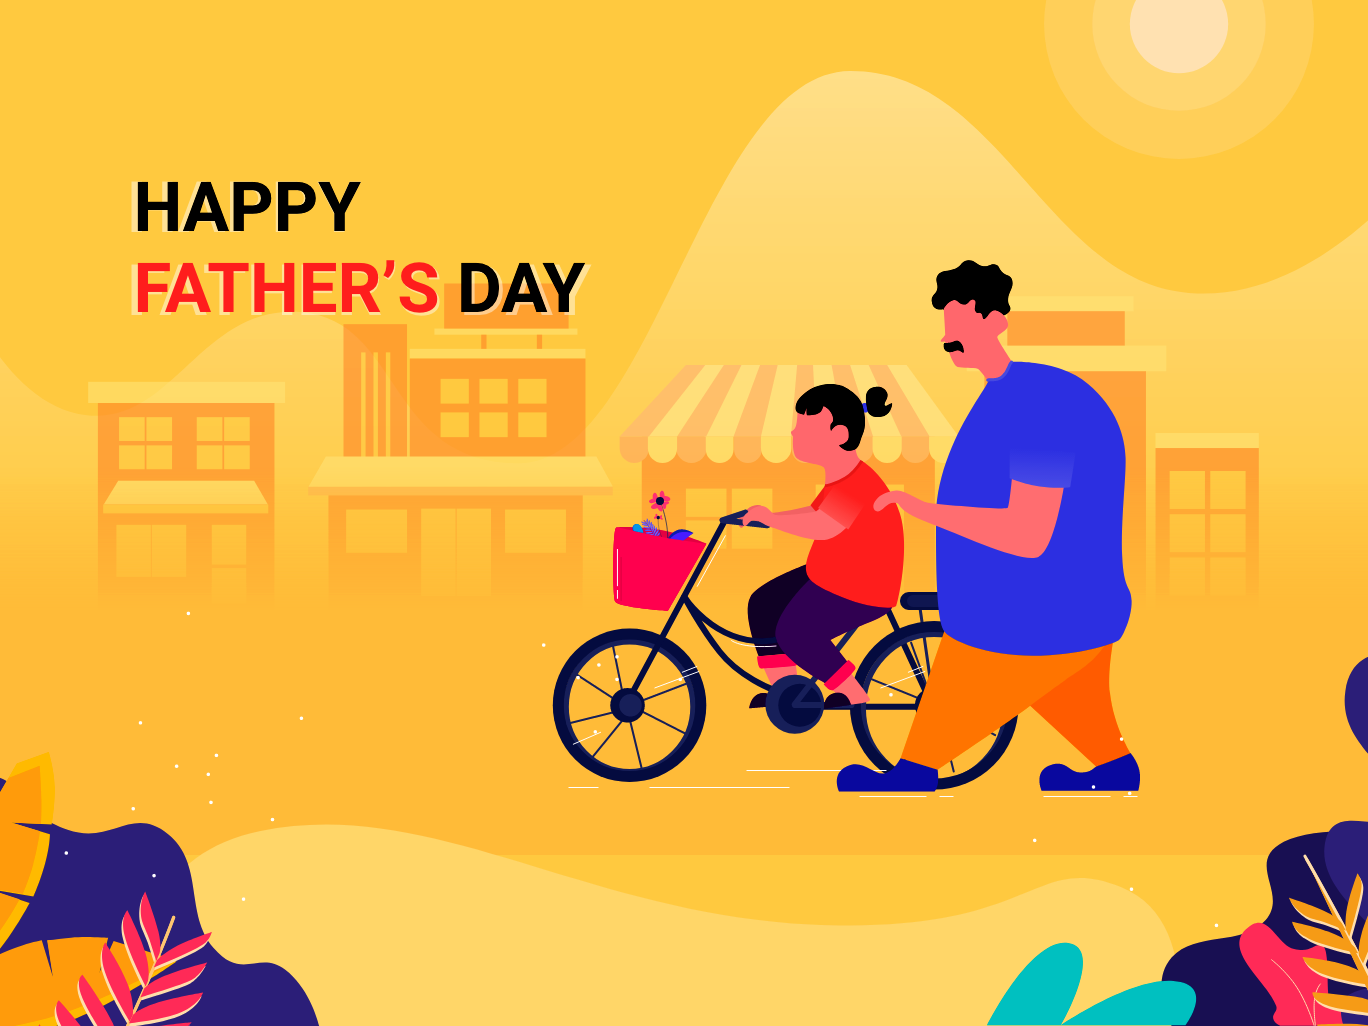 Fathers Day design vector graphic design branding illustrations girl sunny day shot scenery cycle fathers day fathersday